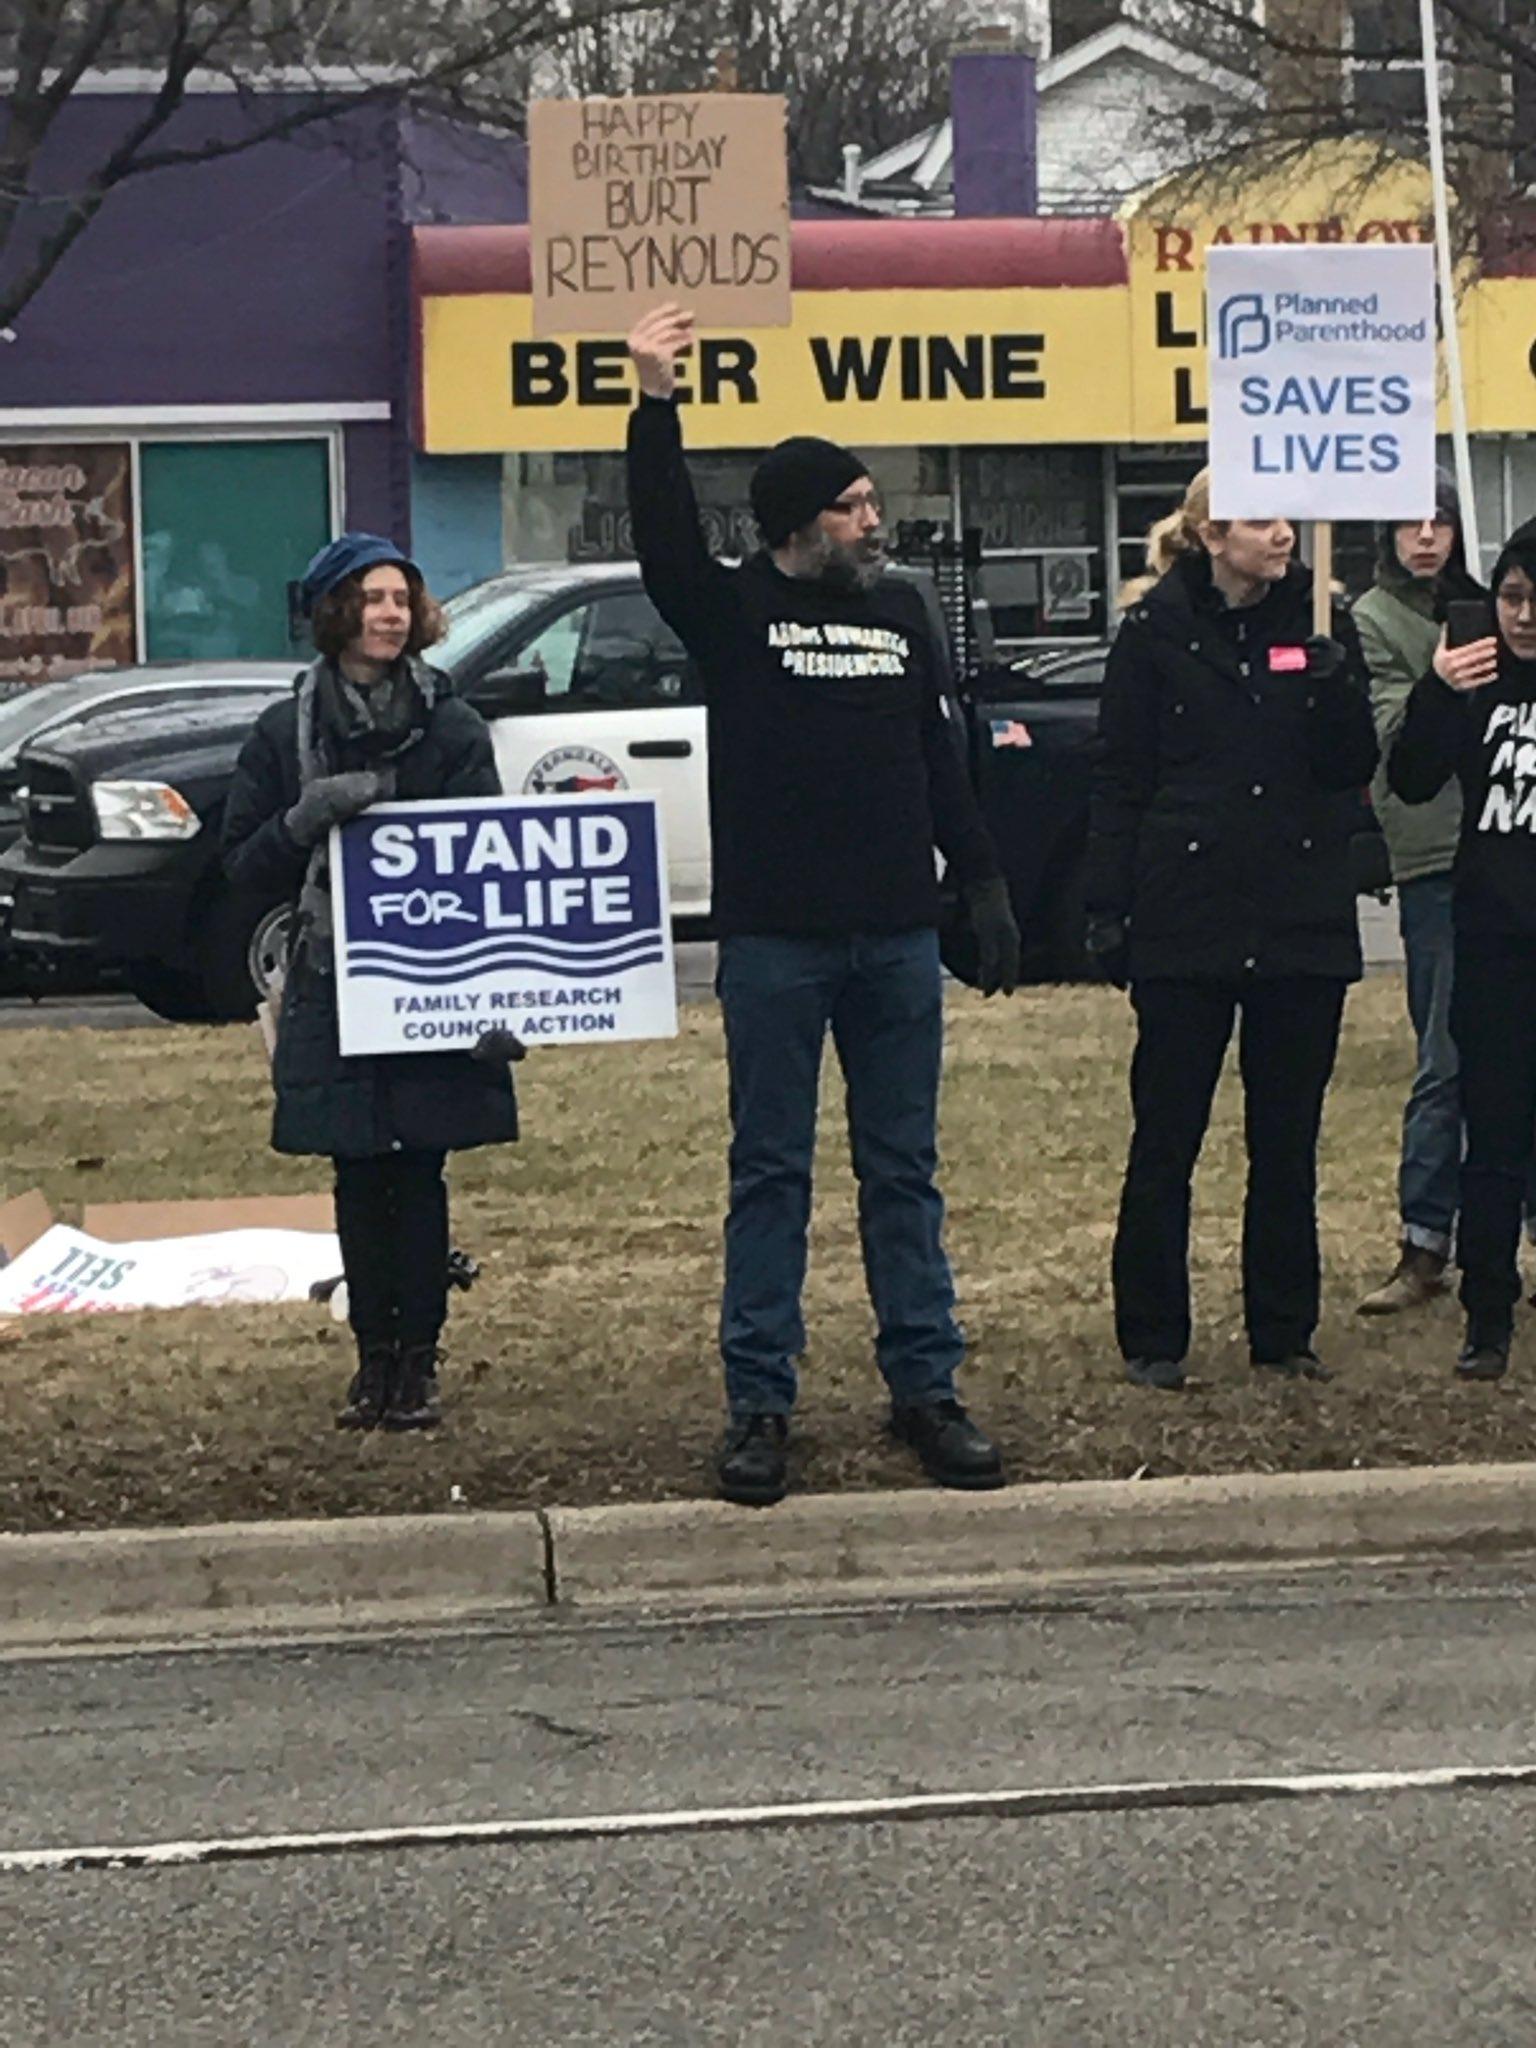 This protester was the hero Ferndale deserves. Also, Happy Birthday Burt Reynolds!